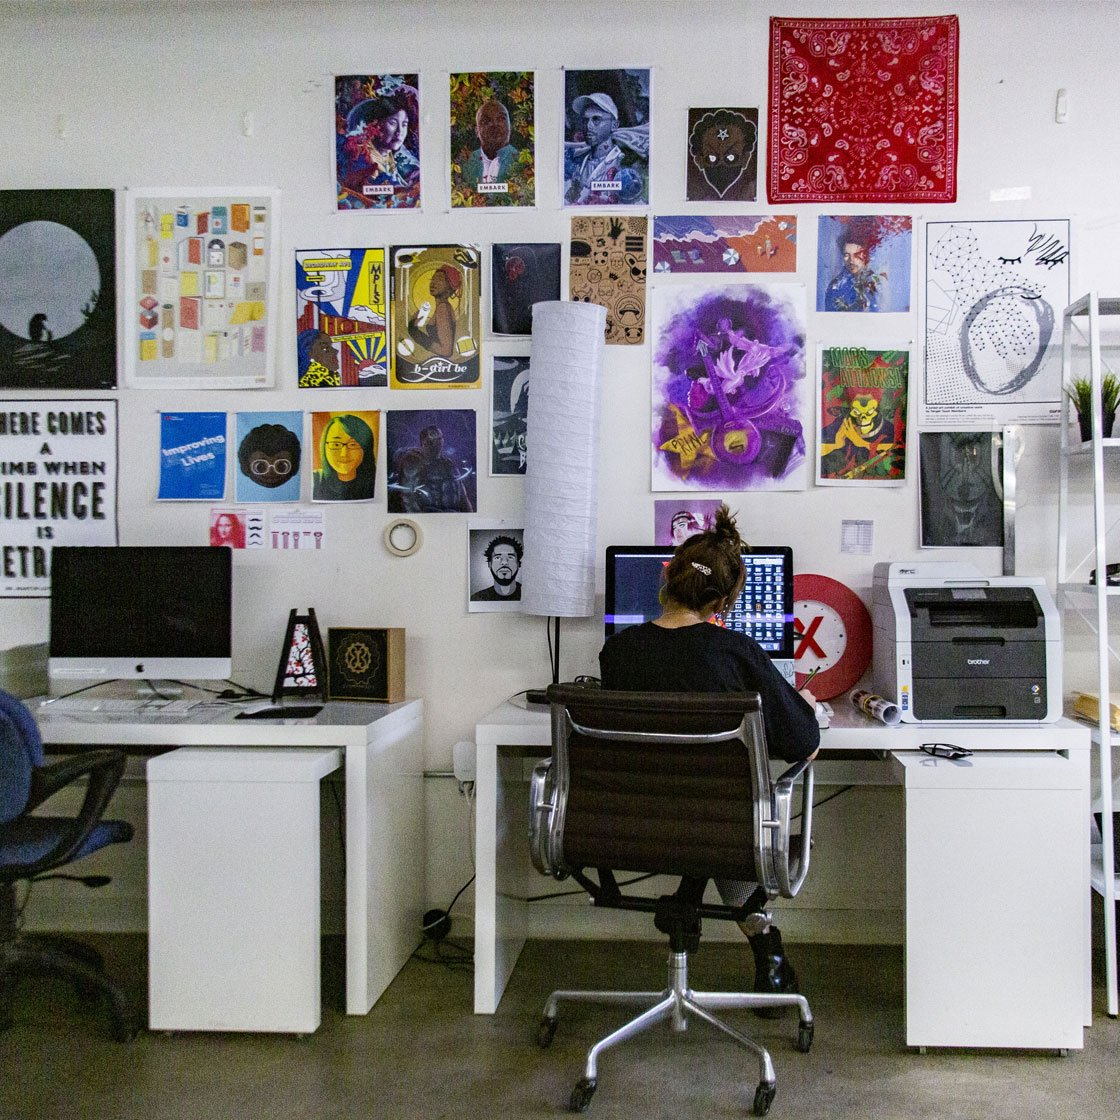 Someone sitting at a computer in front of a wall filled with different kinds of art and posters